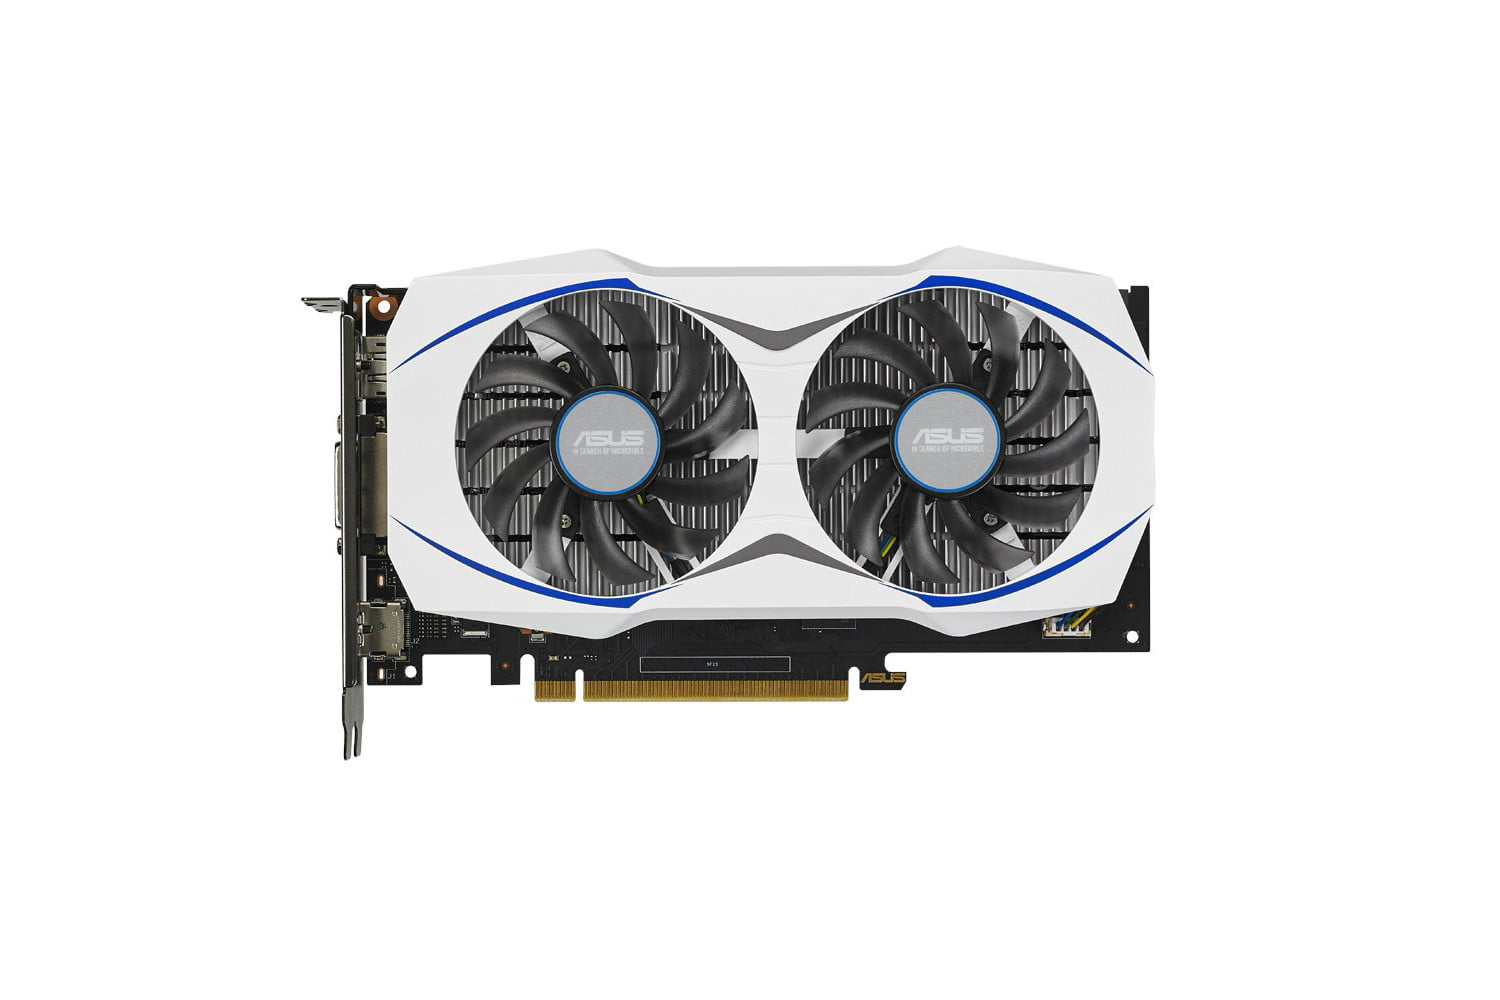 asus geforce gtx 950 gpu negates the need for a power connector 5